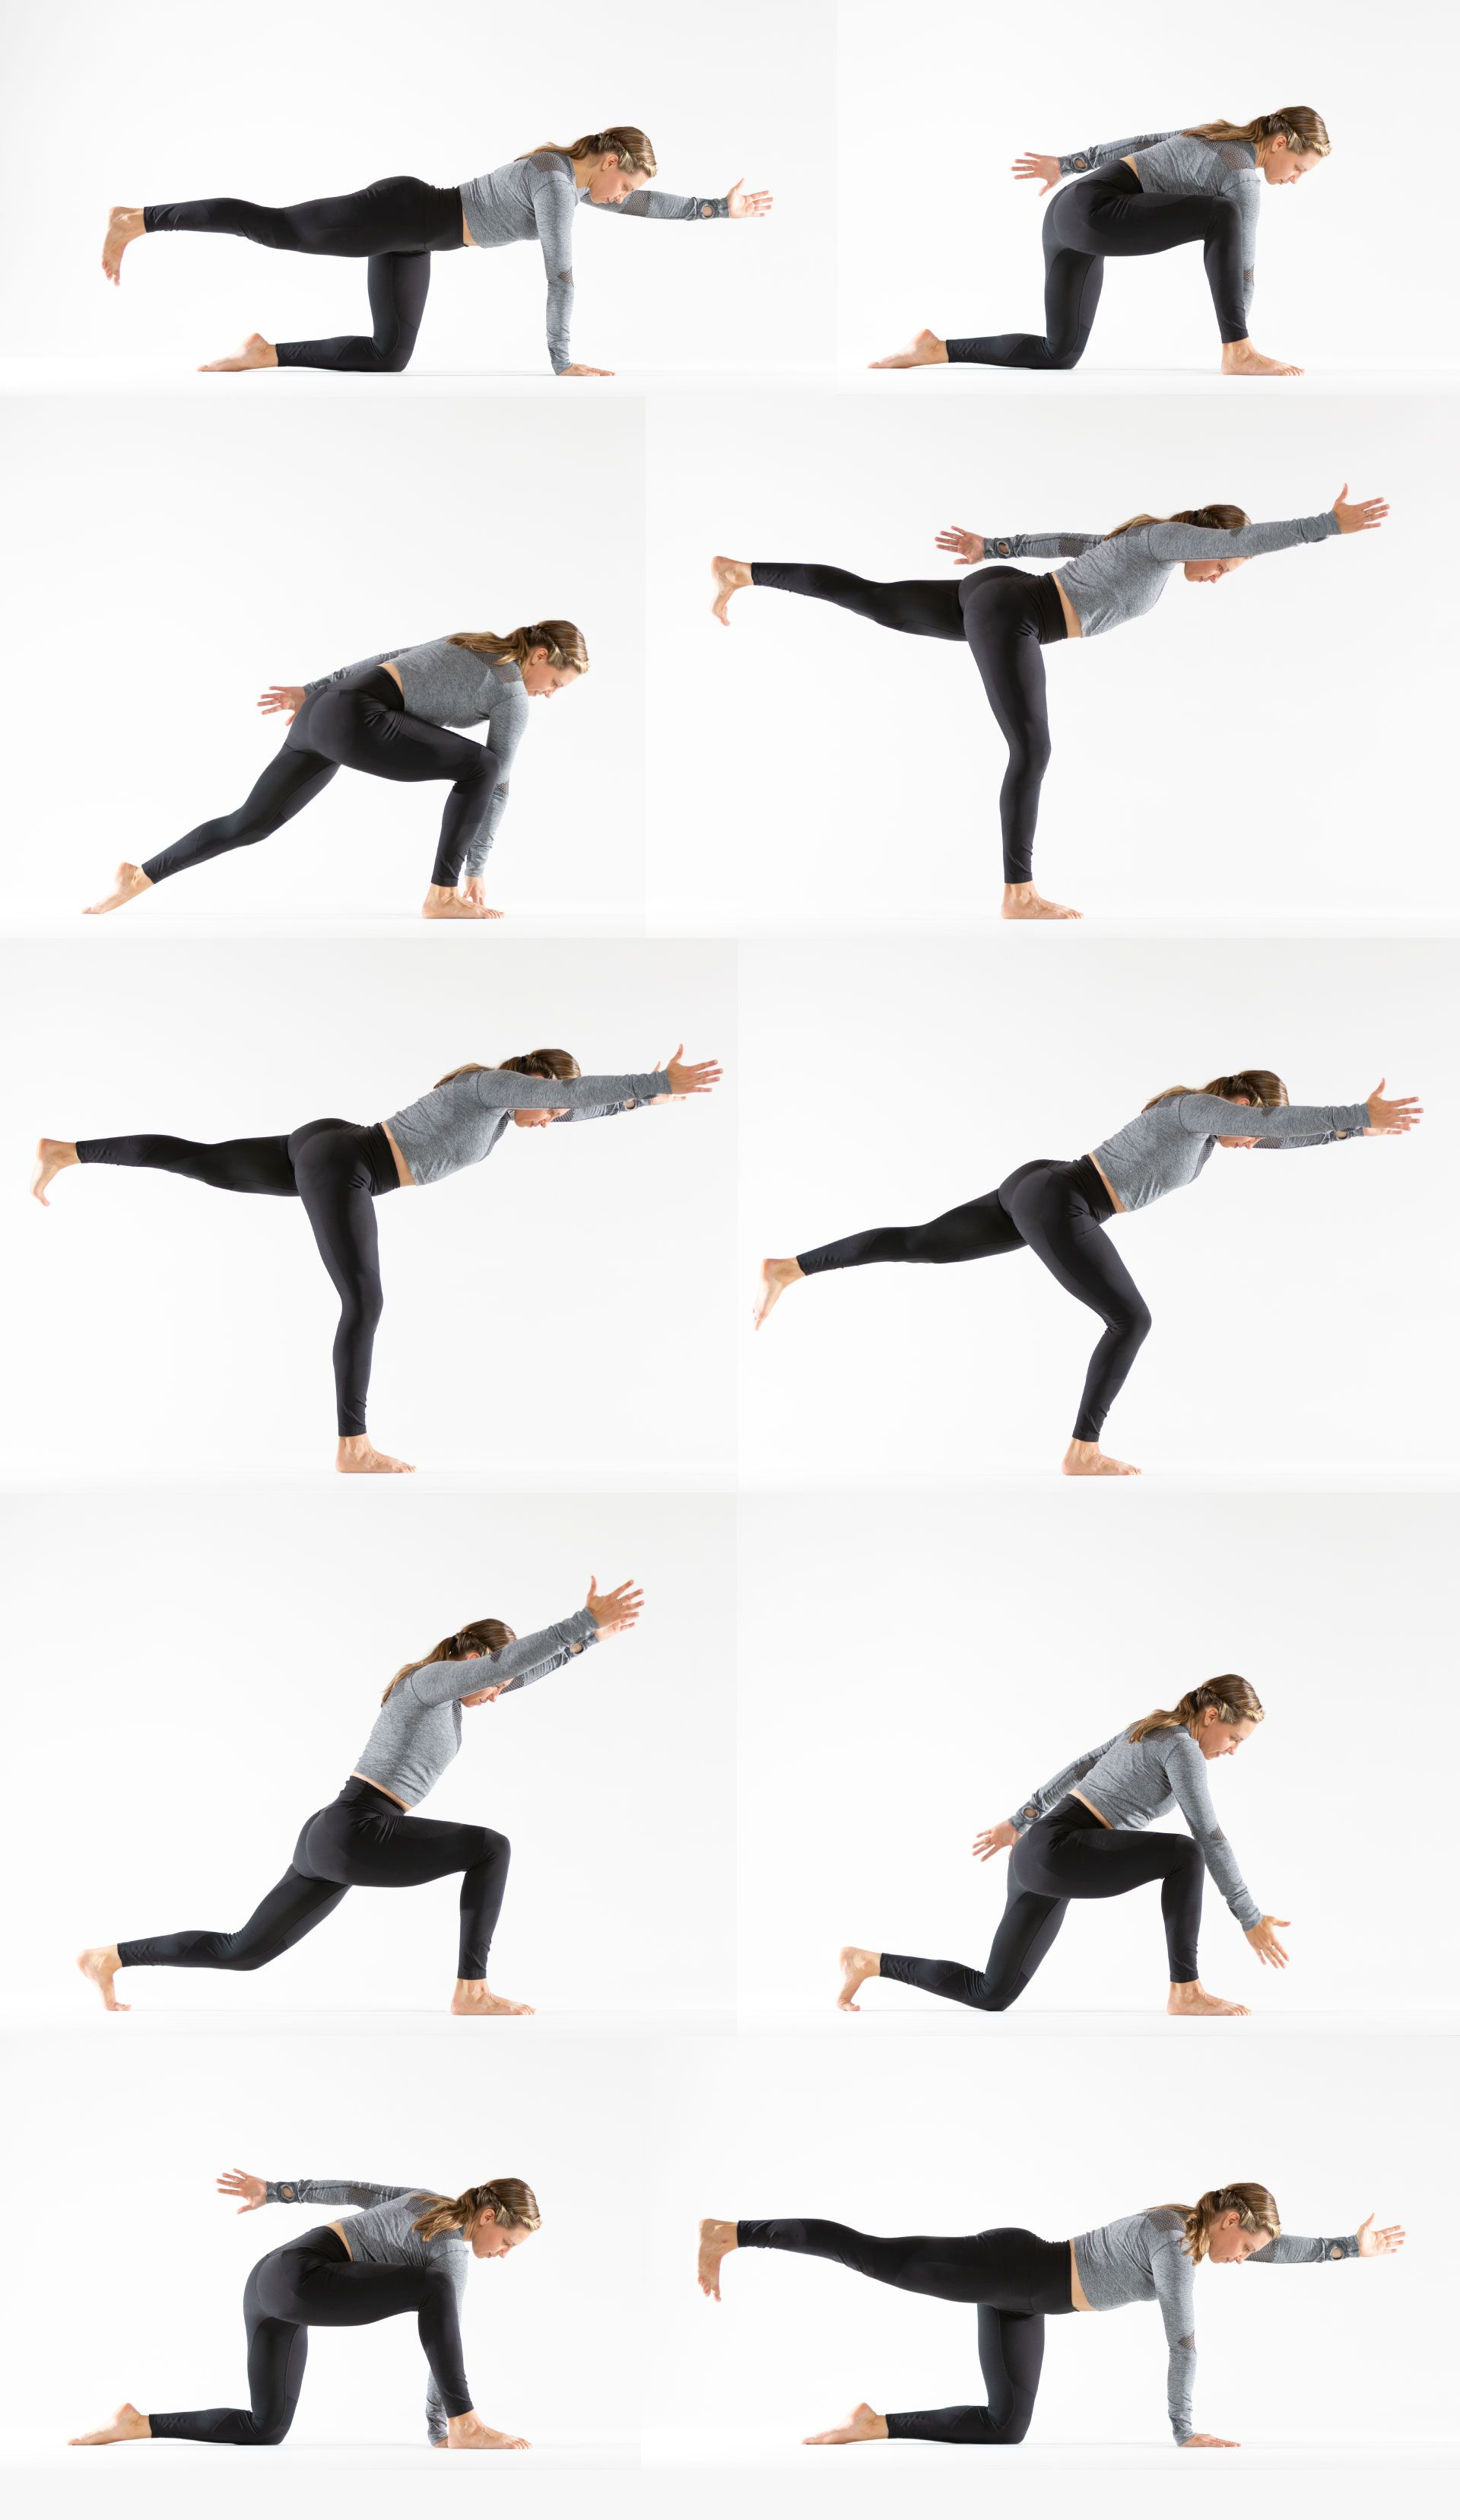 3 Innovative Ways To Improve Your Balance With Yoga Yoga Balance Poses Yoga For Balance Yoga Fitness Inspiration